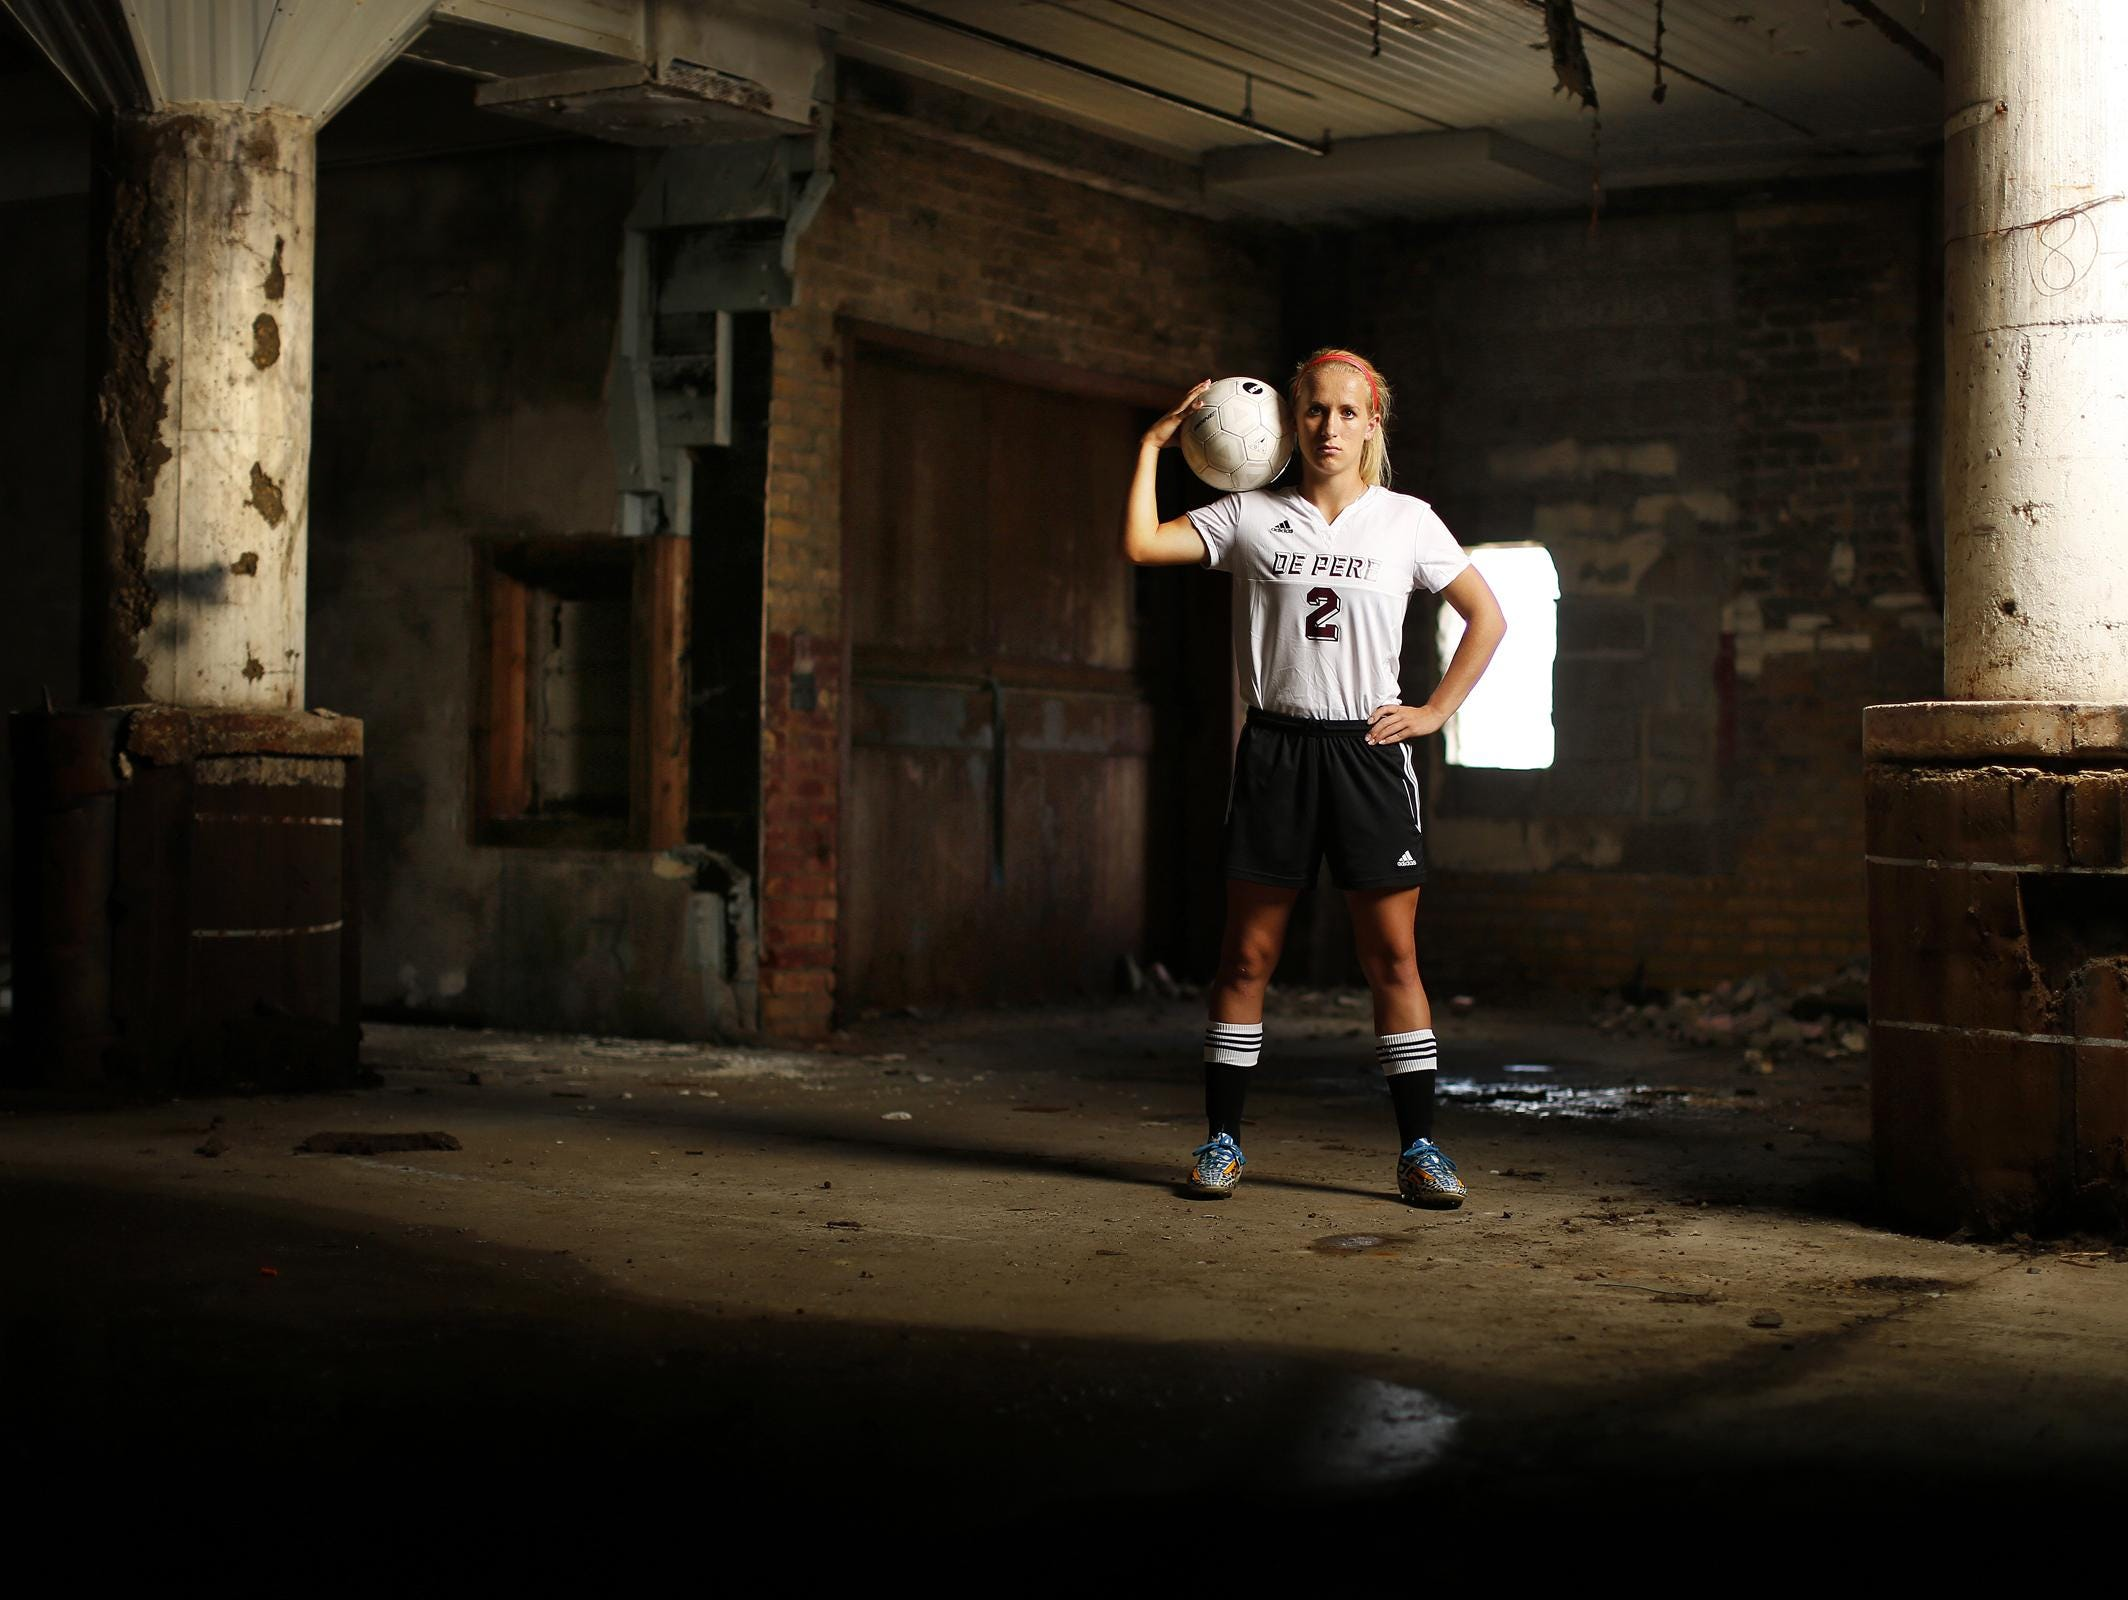 De Pere's Alek Kleis is Press-Gazette Media's soccer player of the year. Kleis is shown inside the former Larsen Canning Company in the Broadway District.